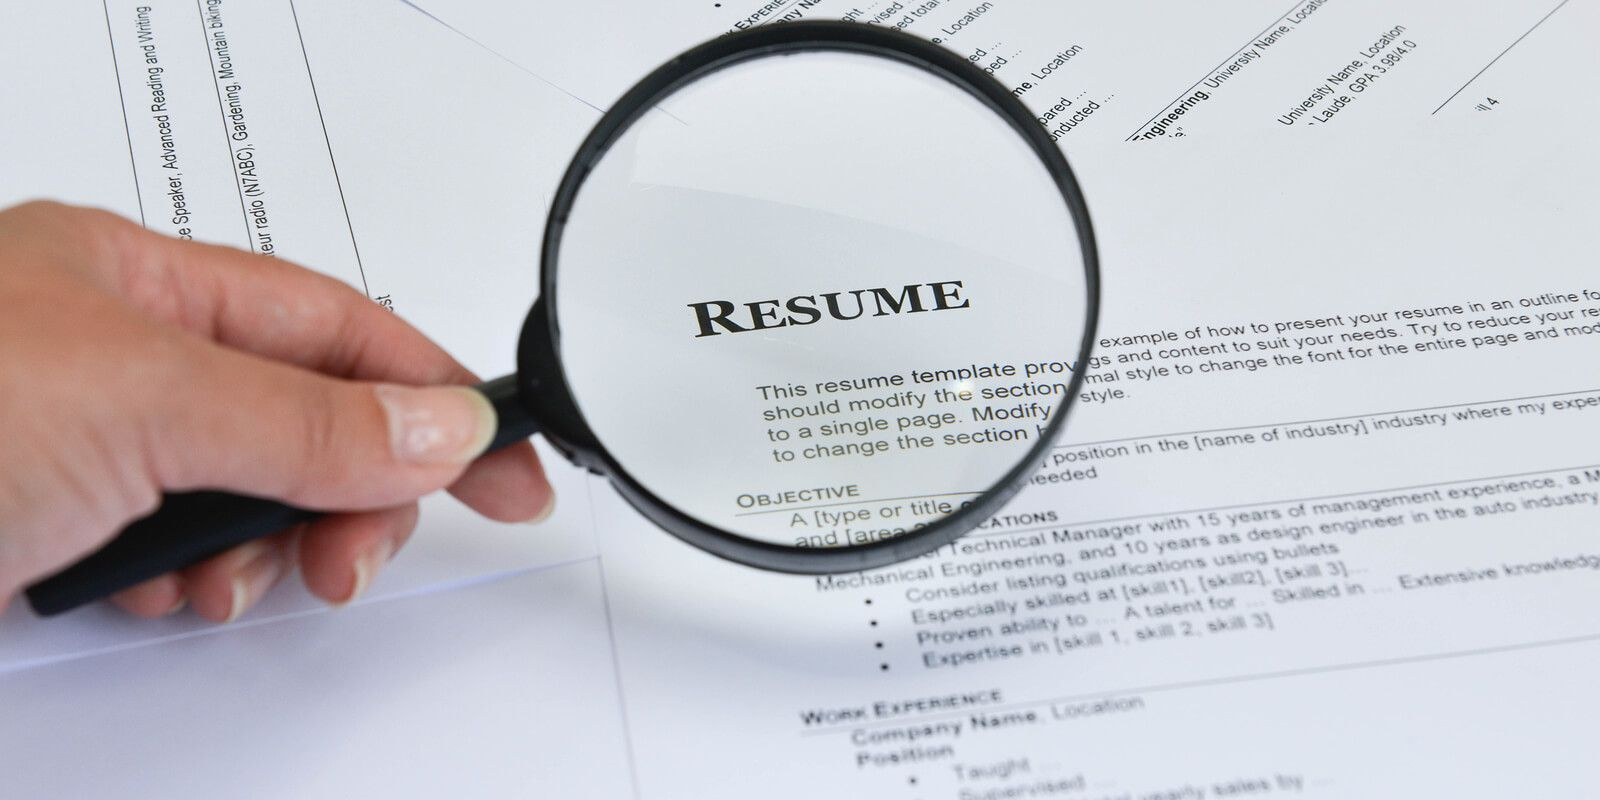 Figuring out how to make your resume less boring can be a